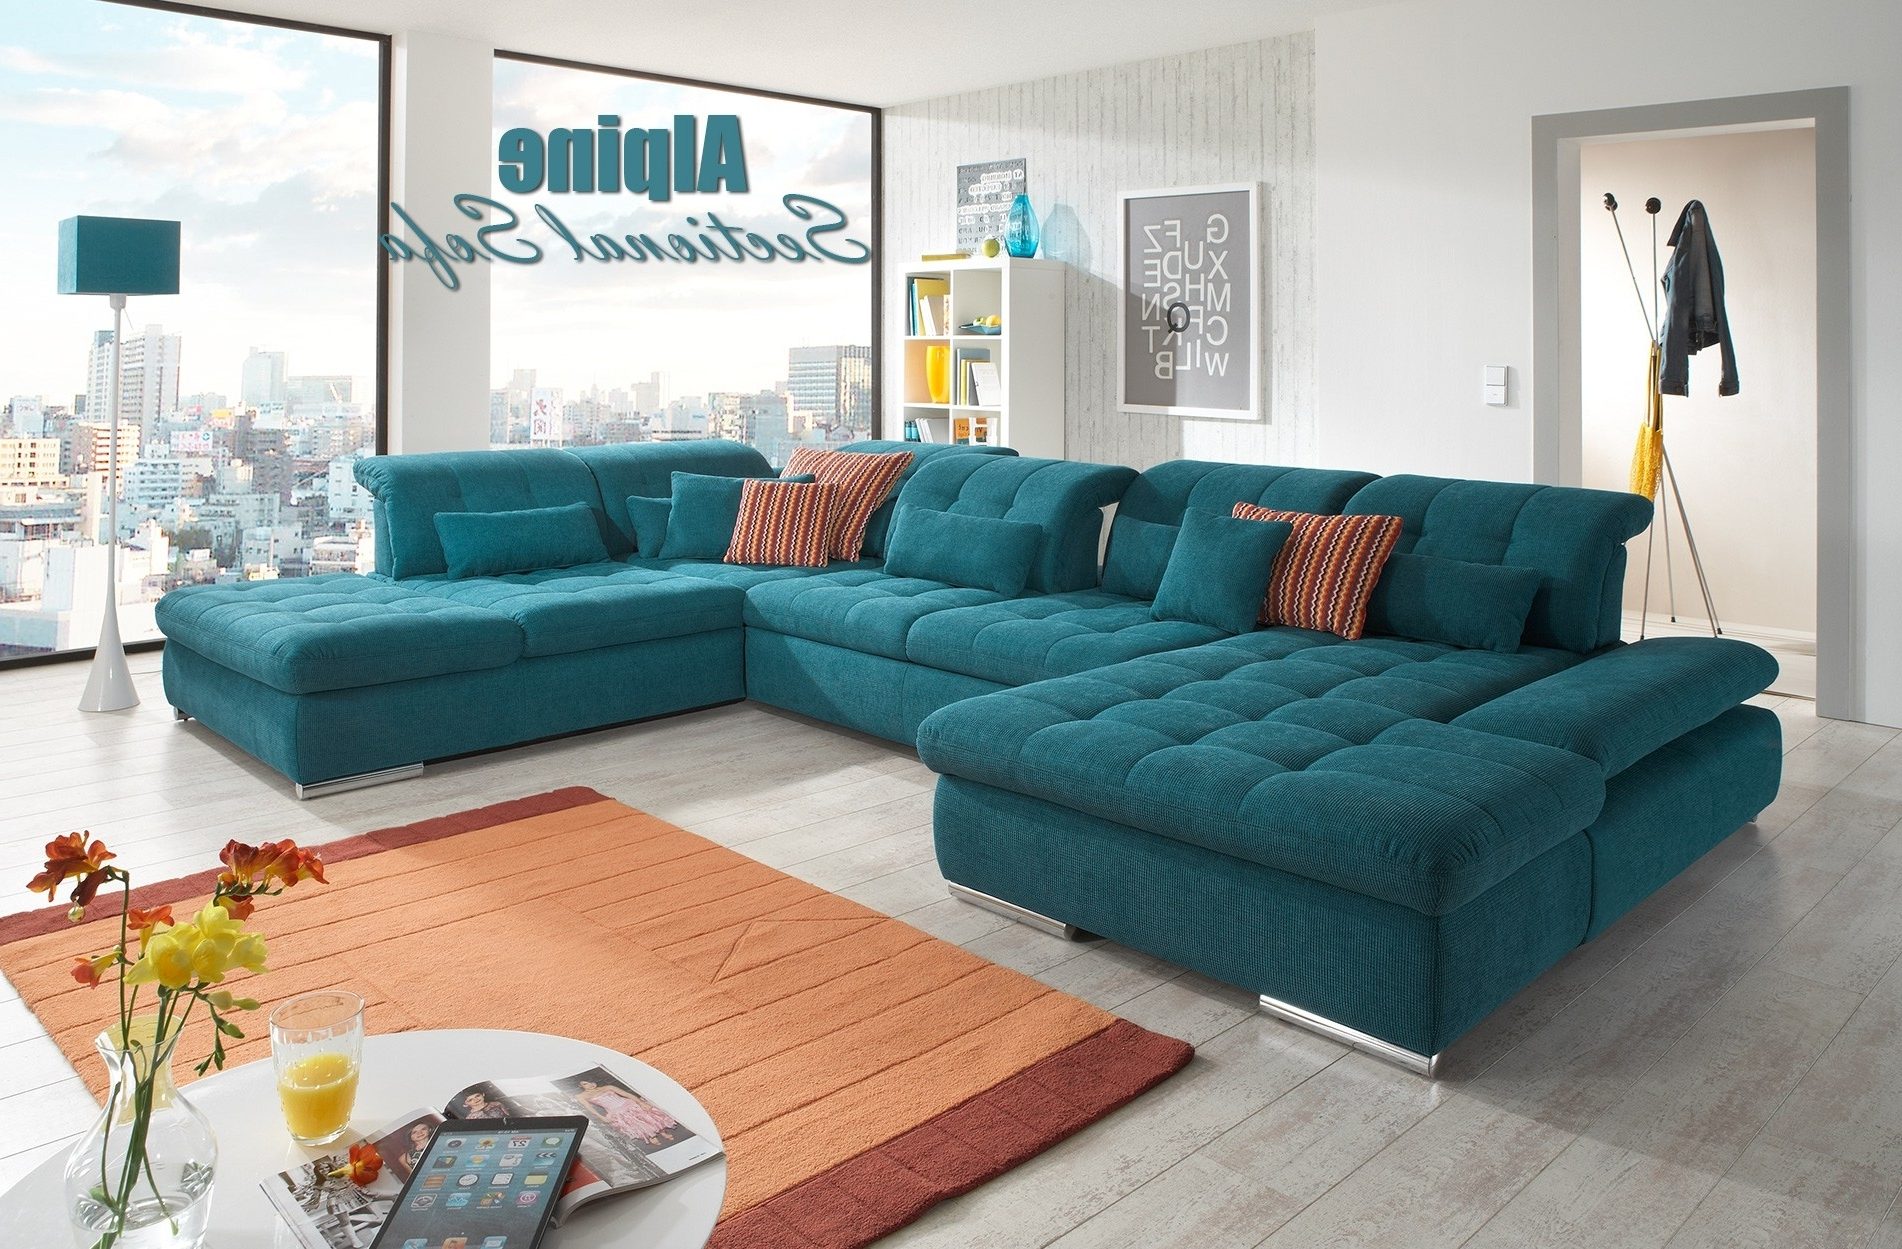 Trinidad And Tobago Sectional Sofas For Trendy Alpine Sectional Sofa In Green Fabric (View 11 of 20)